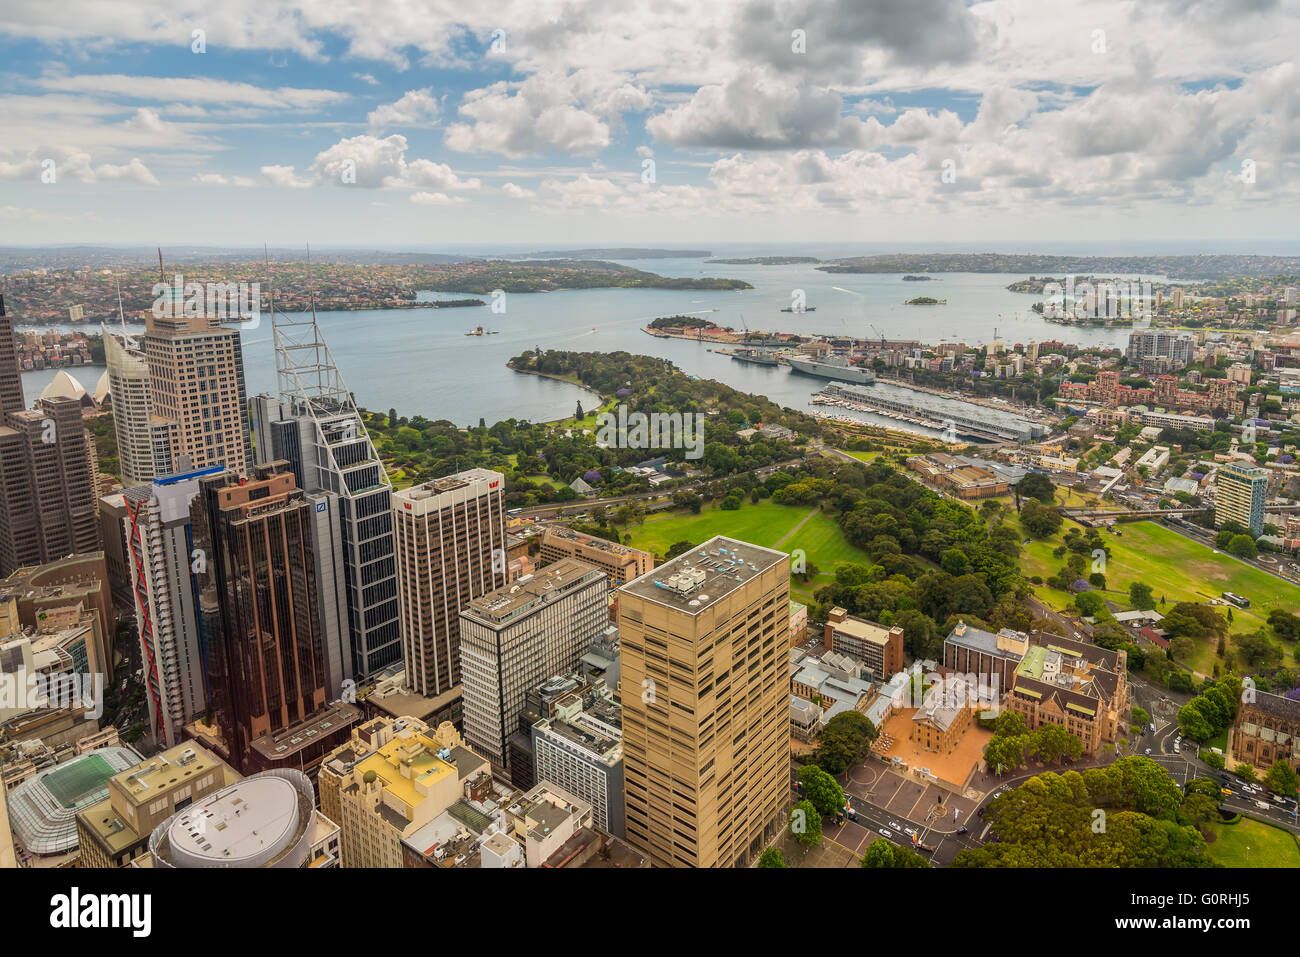 Aerial view of Sydney CBD, Royal Botanic Garden and harbour from Sydney Tower Eye in cloudy weather - Stock Image